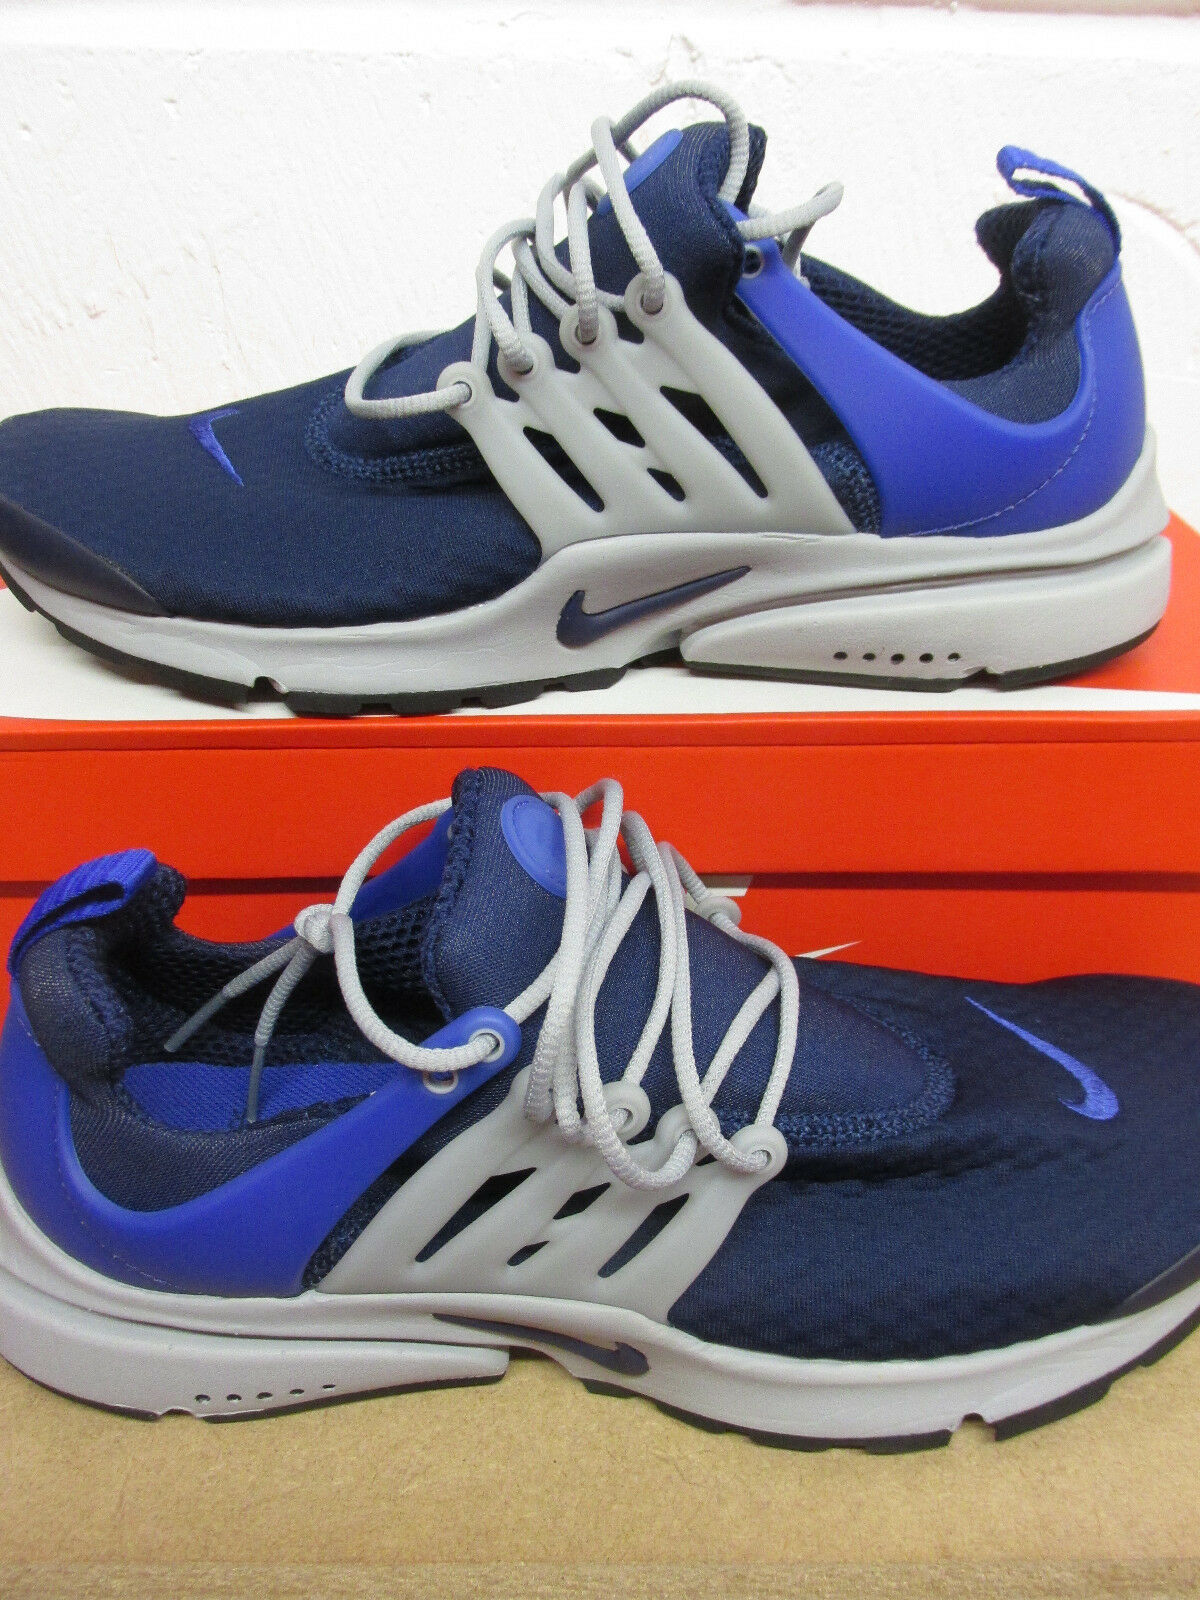 Nike air presto essential mens running trainers 848187 400 sneakers shoes